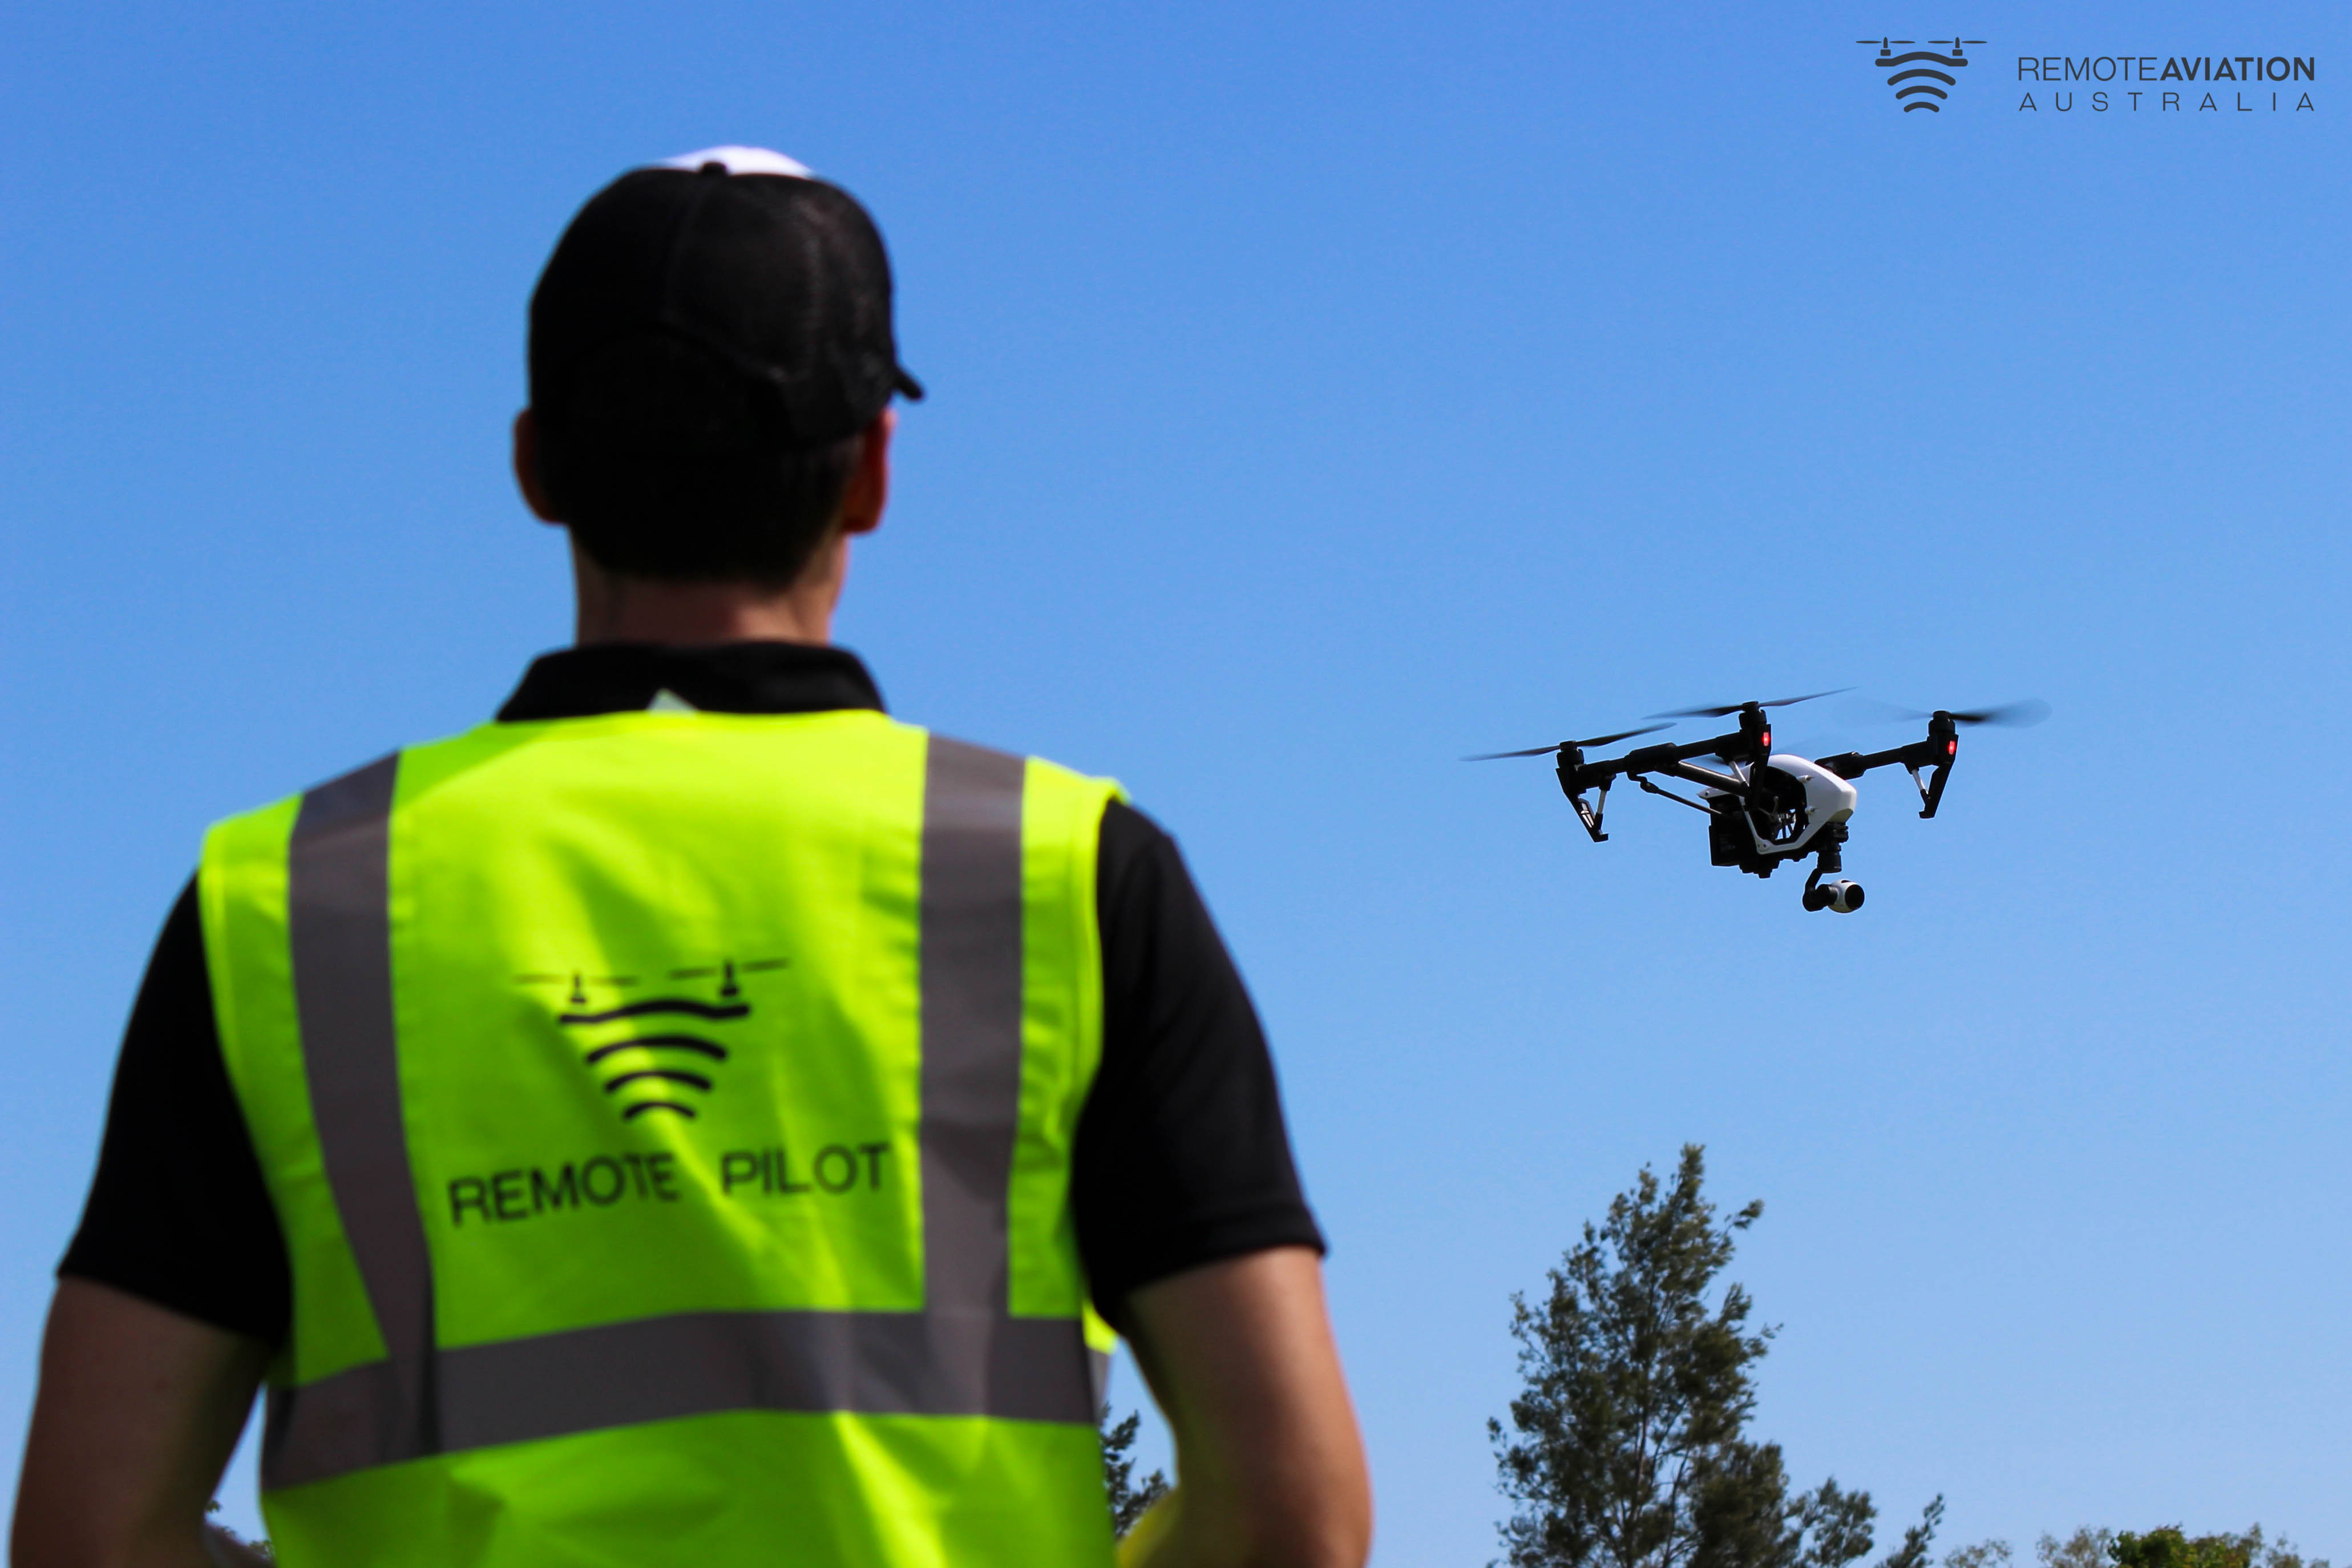 Remote pilot licence training